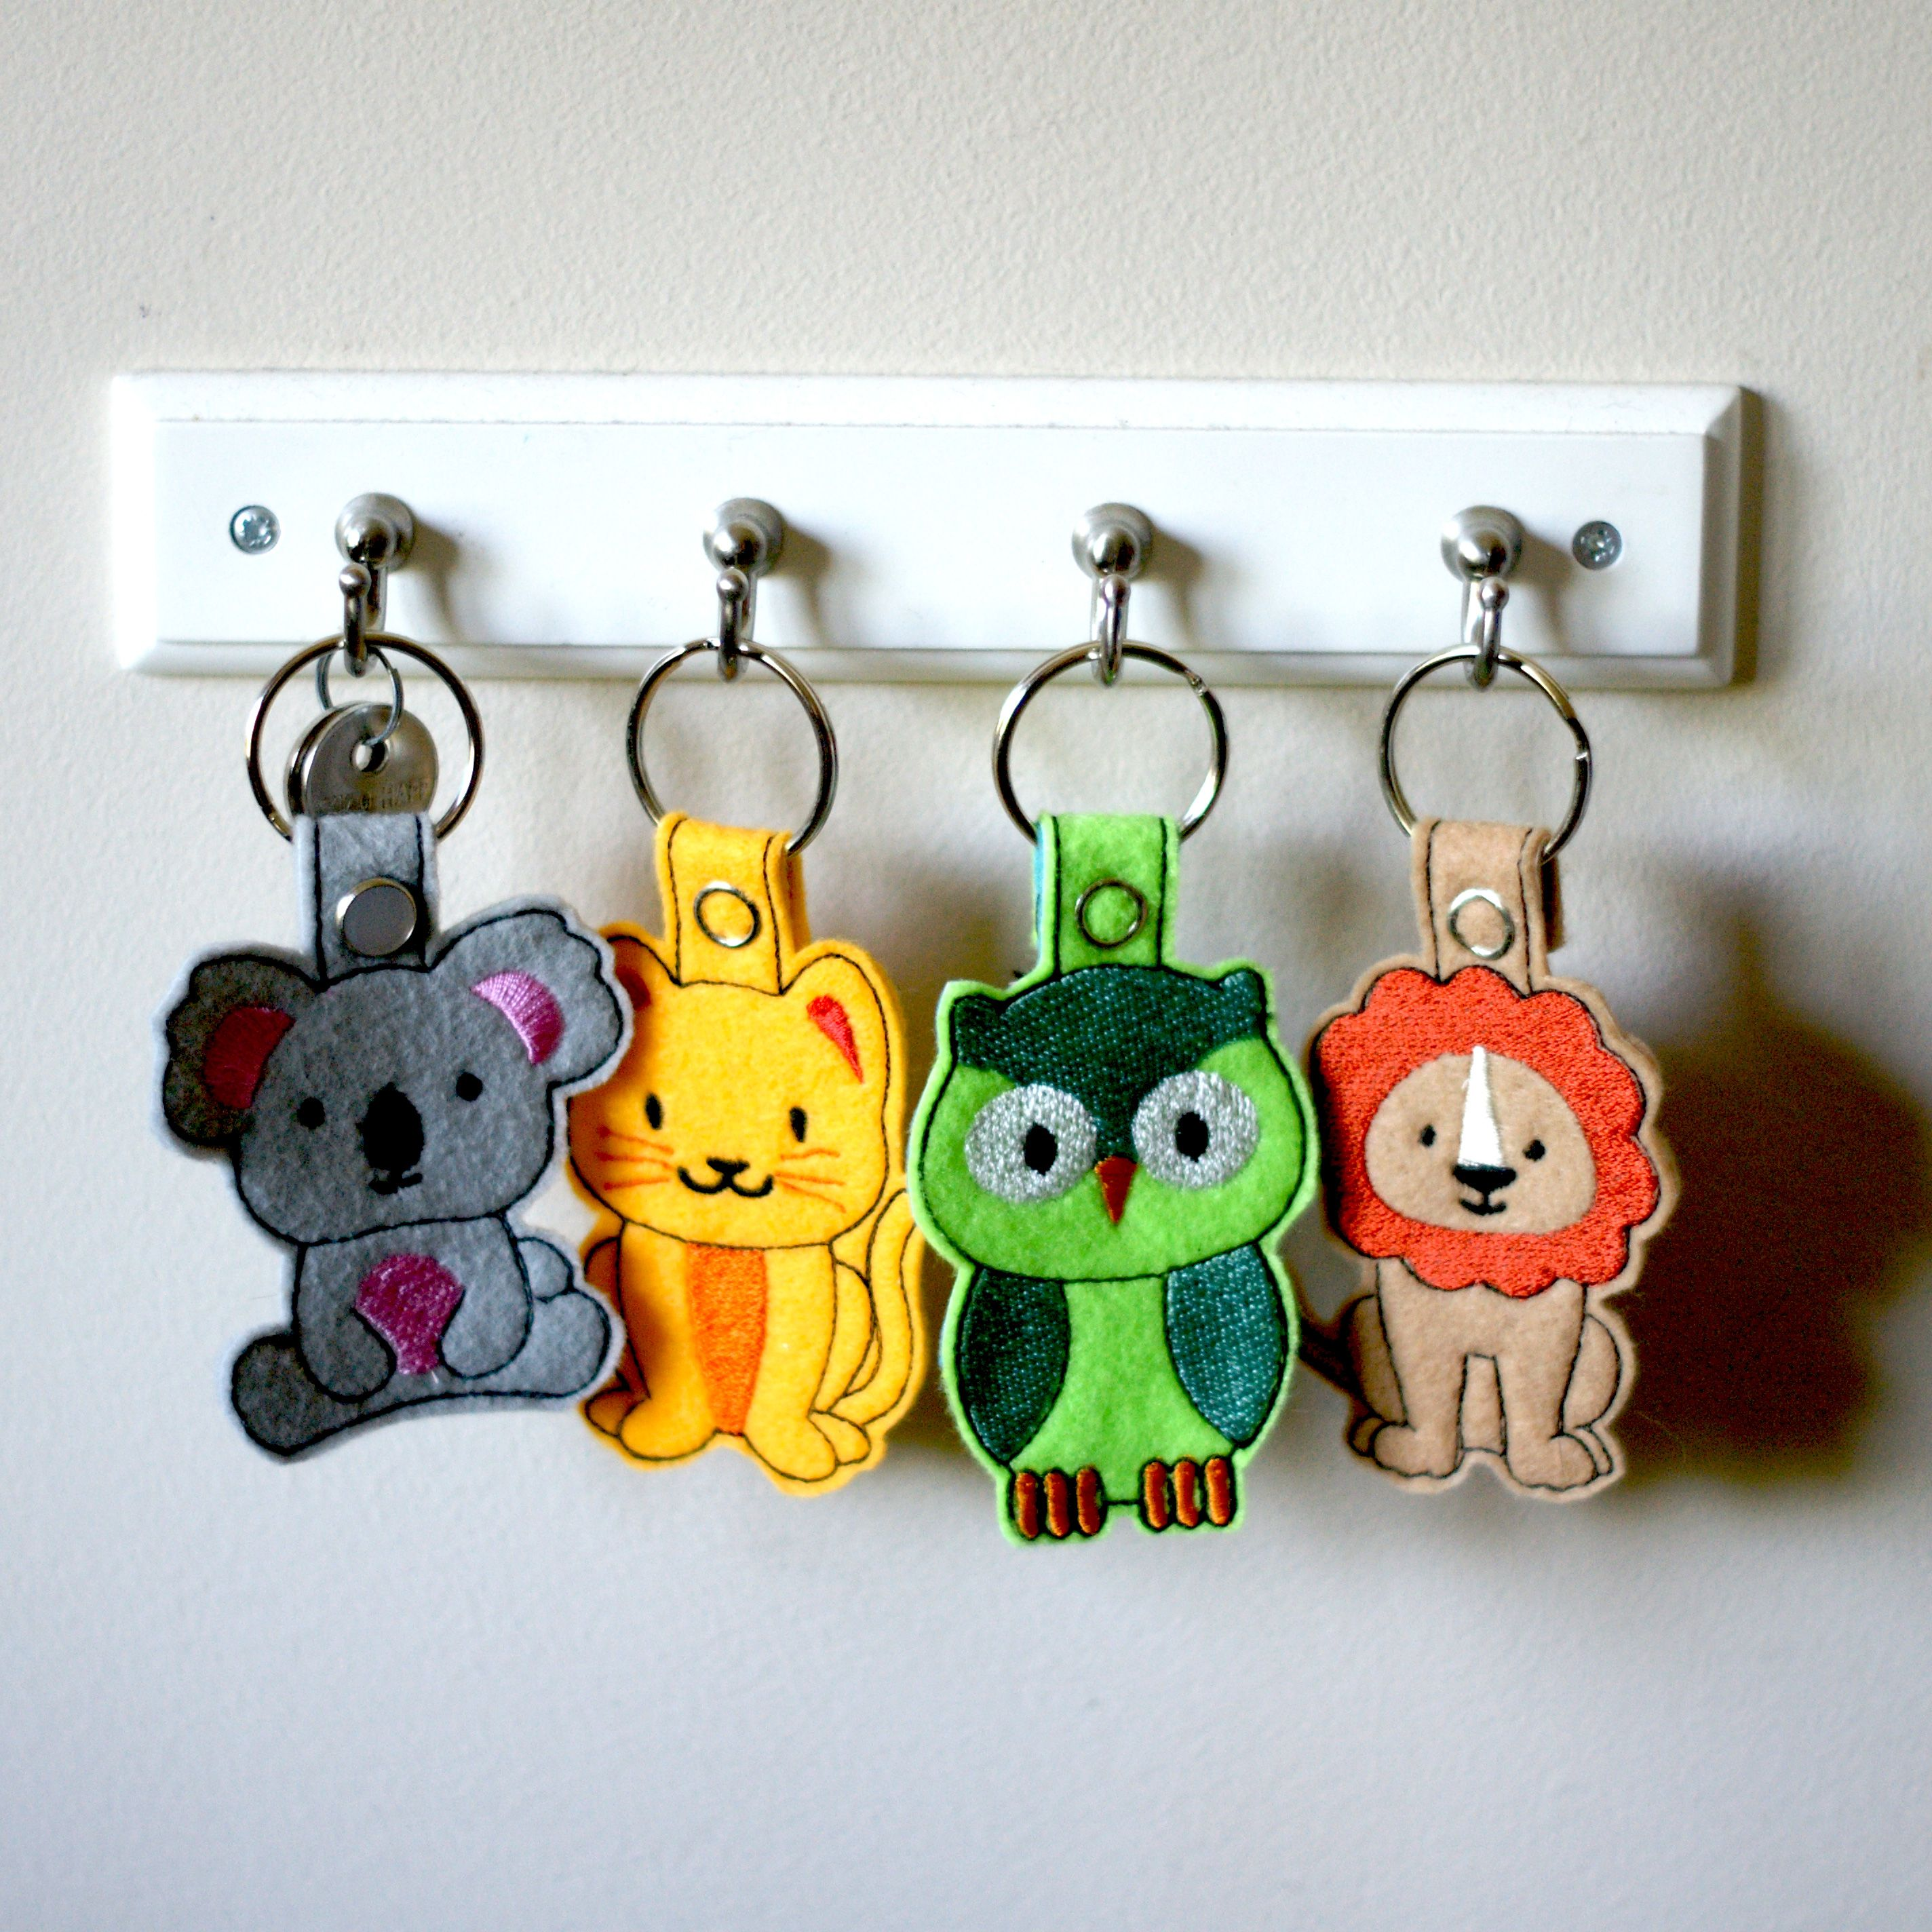 In The Hoop Animal Key Fobs Pack of 12 Hurry Intro Price $3 99